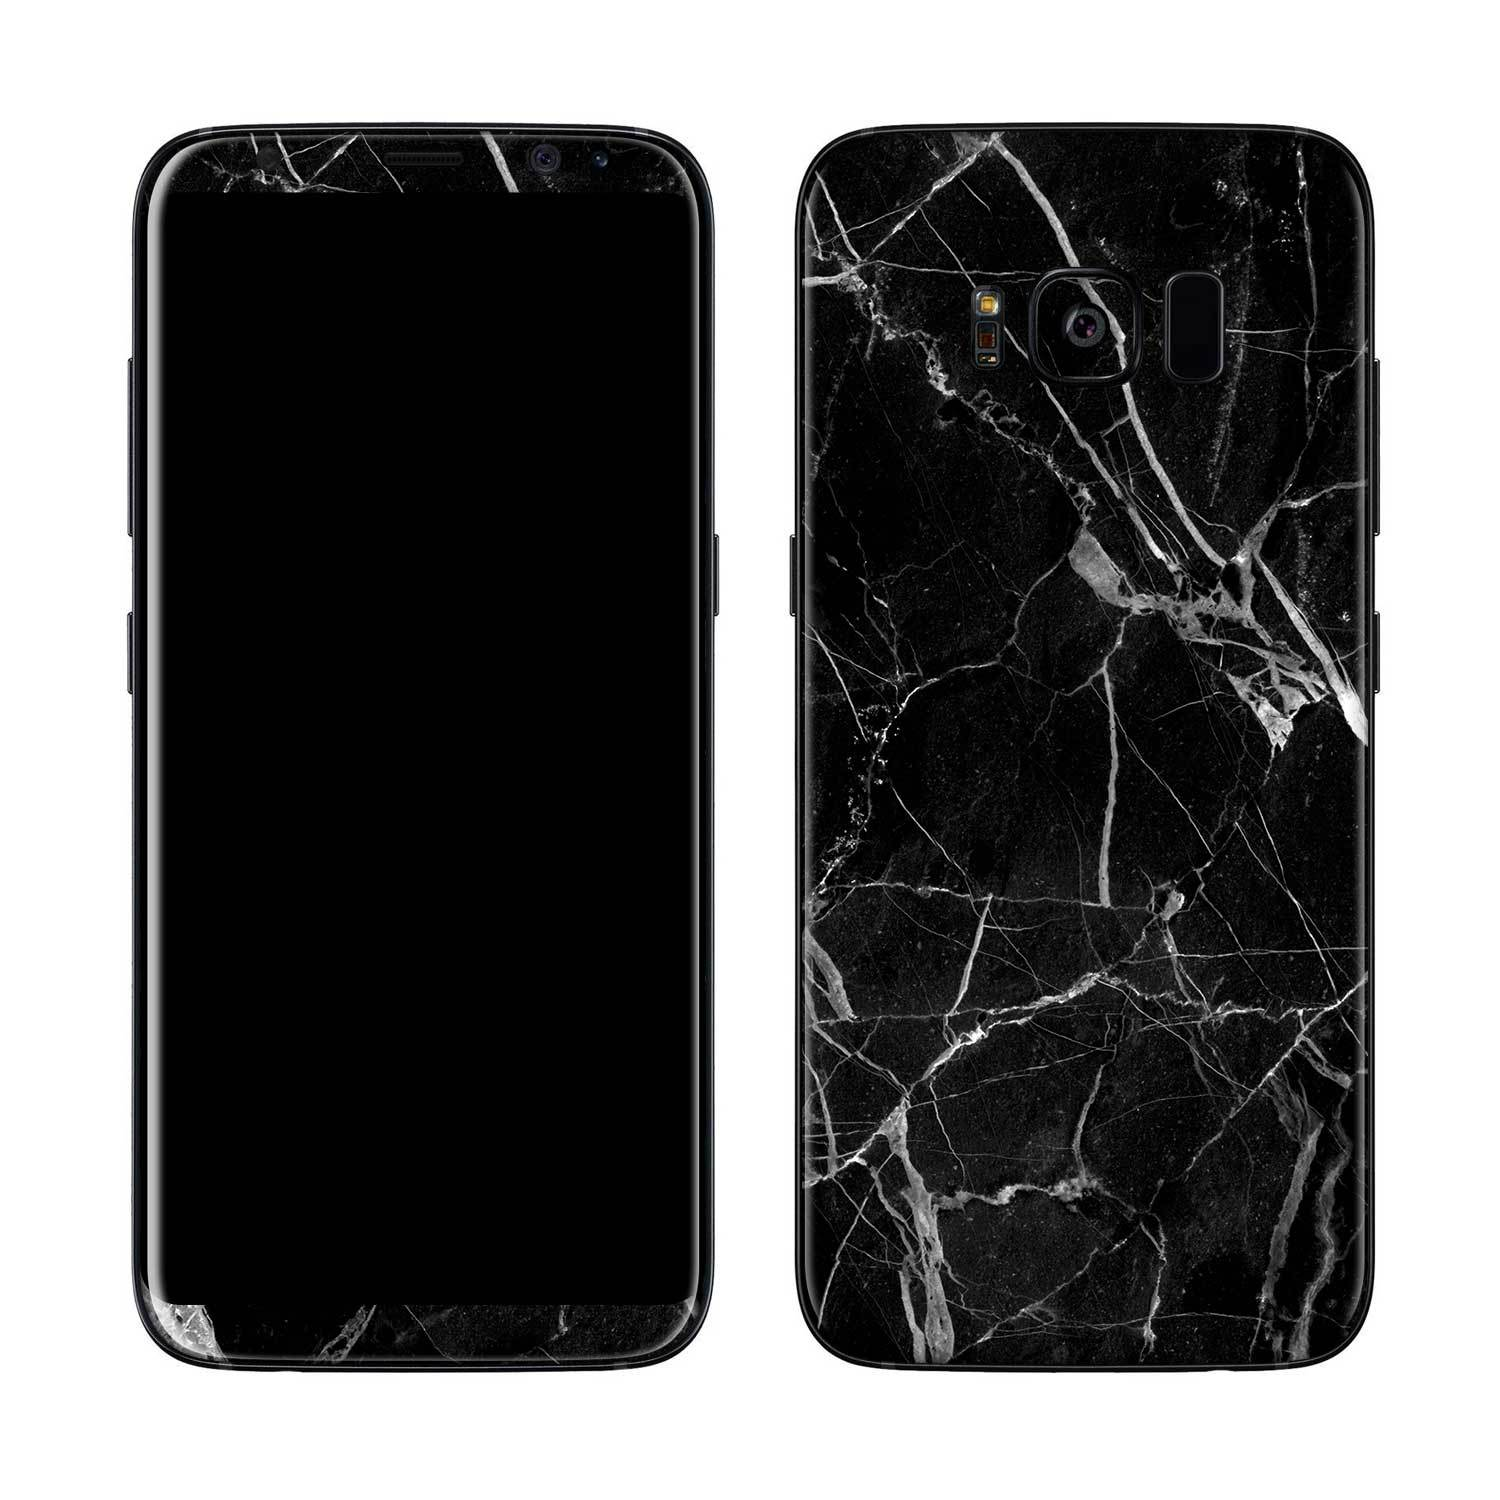 Black Hyper Marble Galaxy S8 Plus Skin + Case